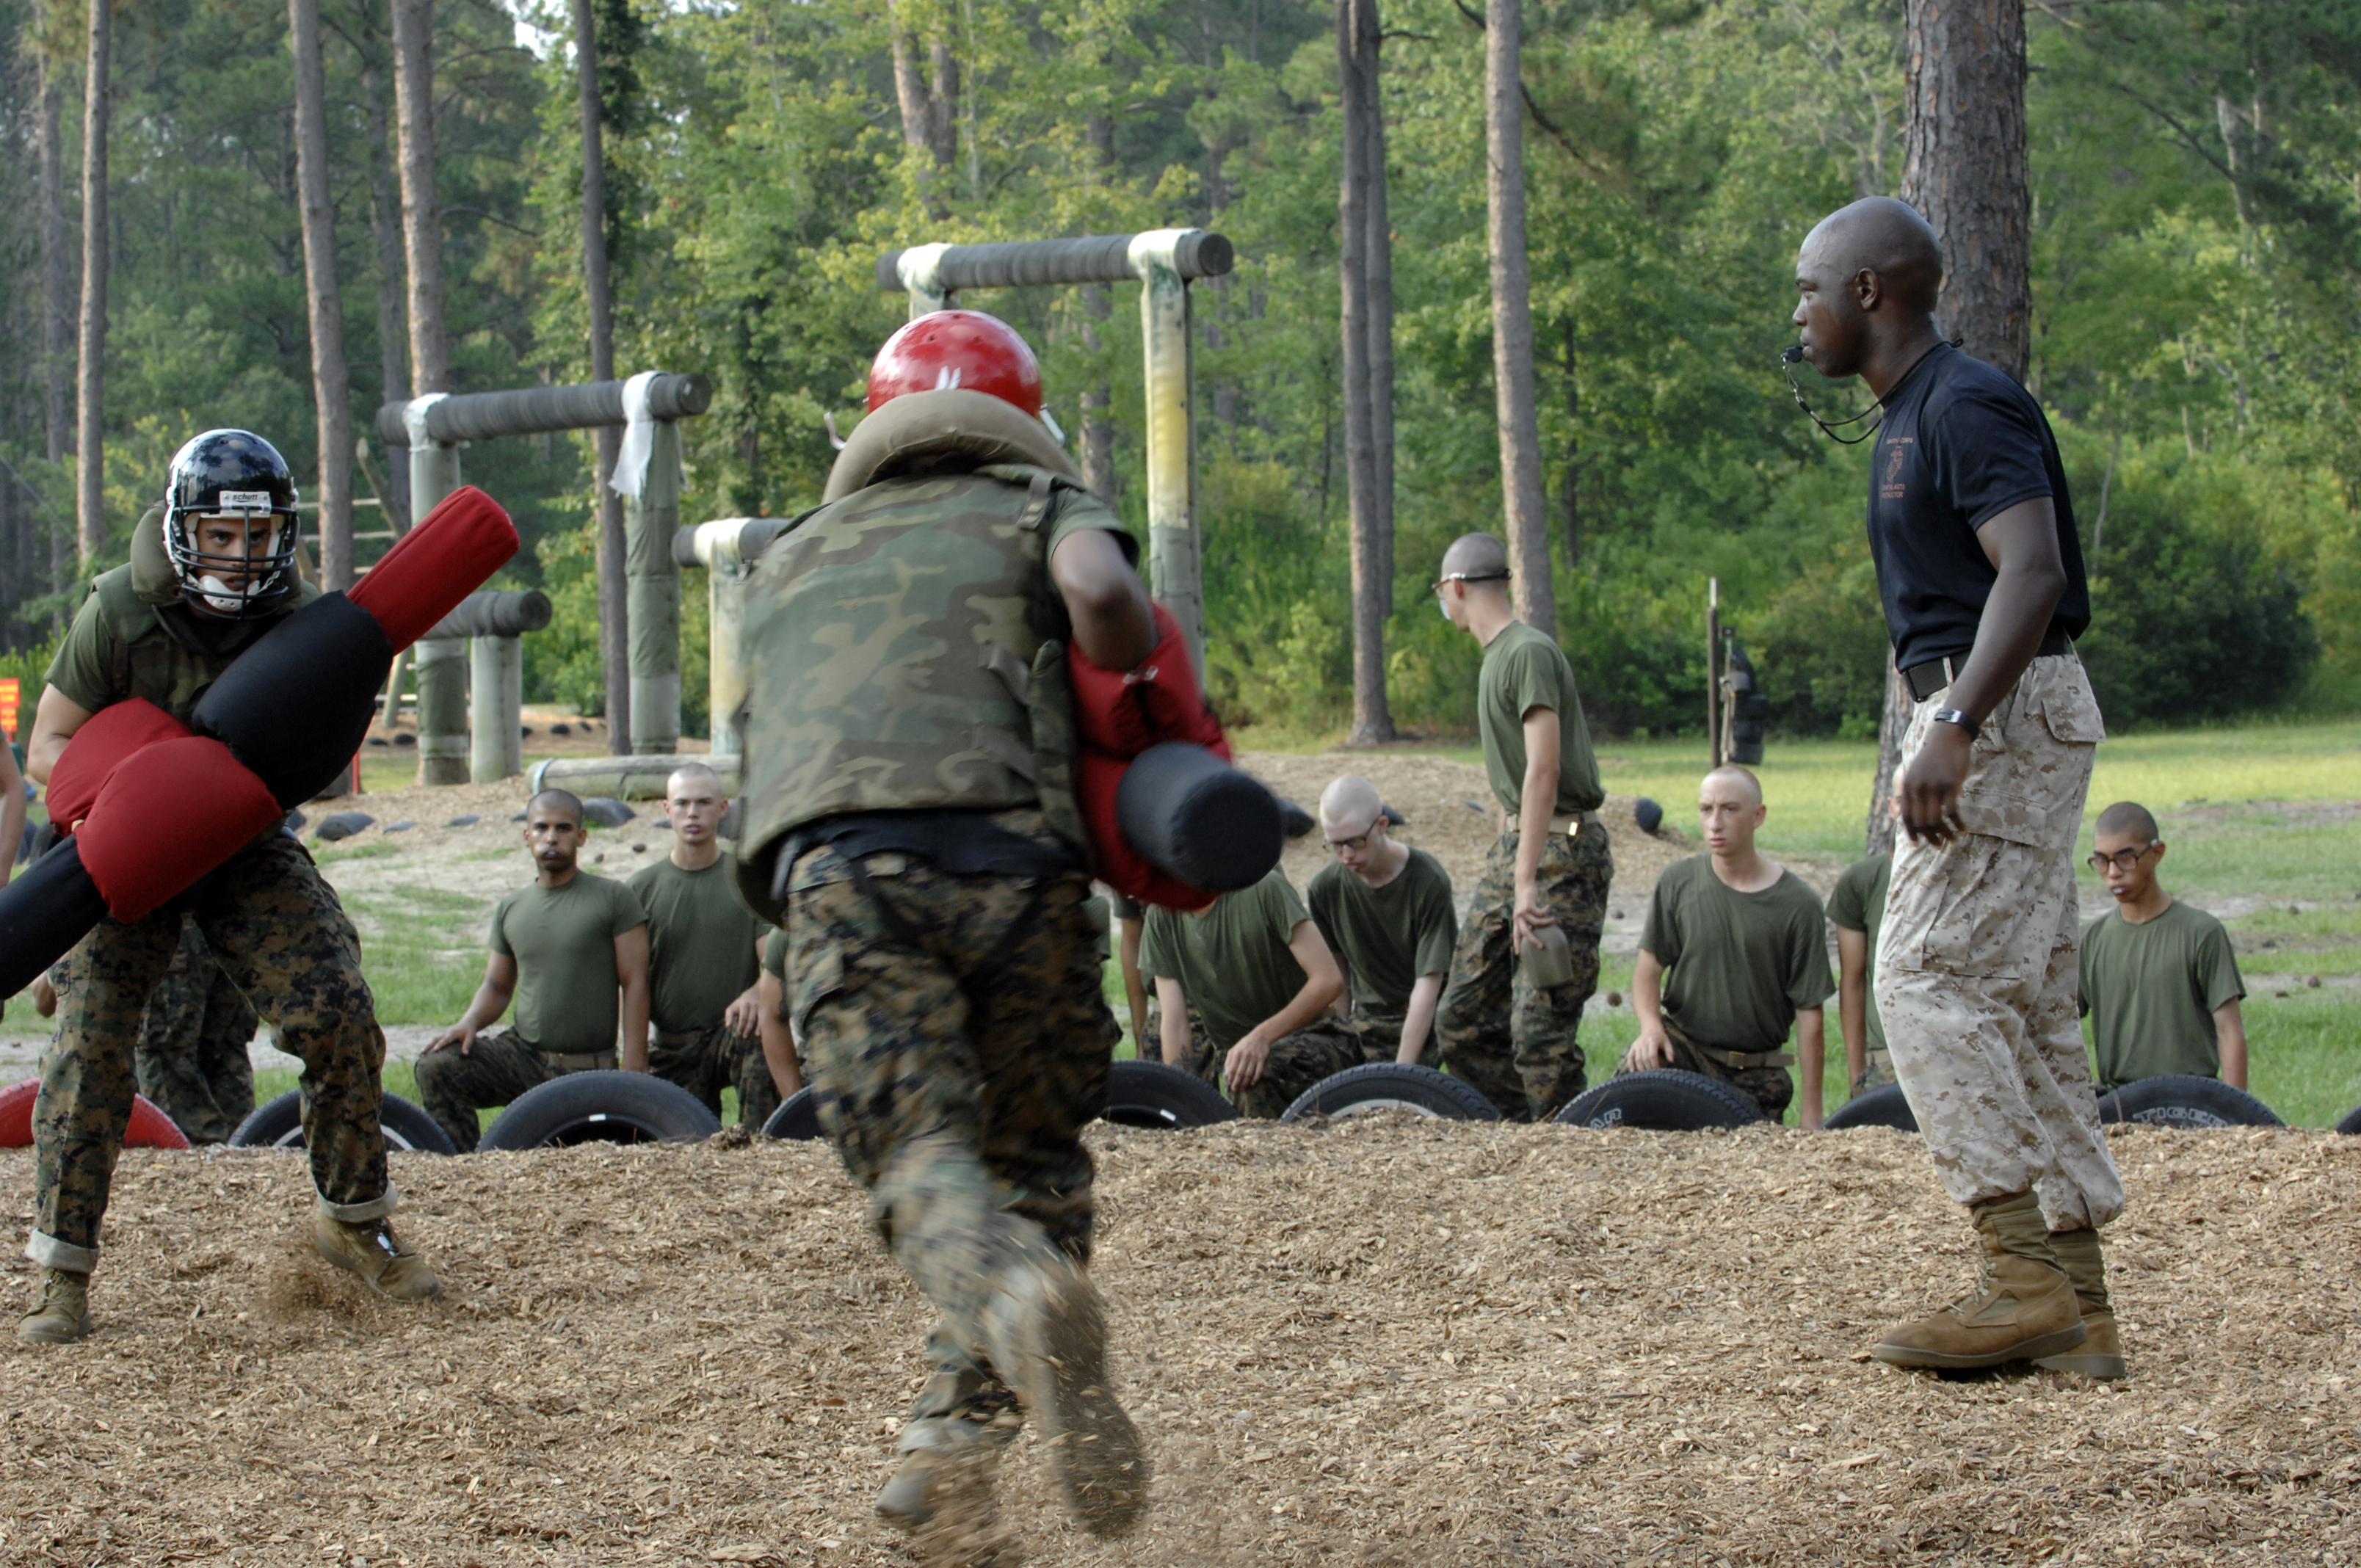 File:US Navy 070625-N-3642E-481 At Marine Corps Recruit ...